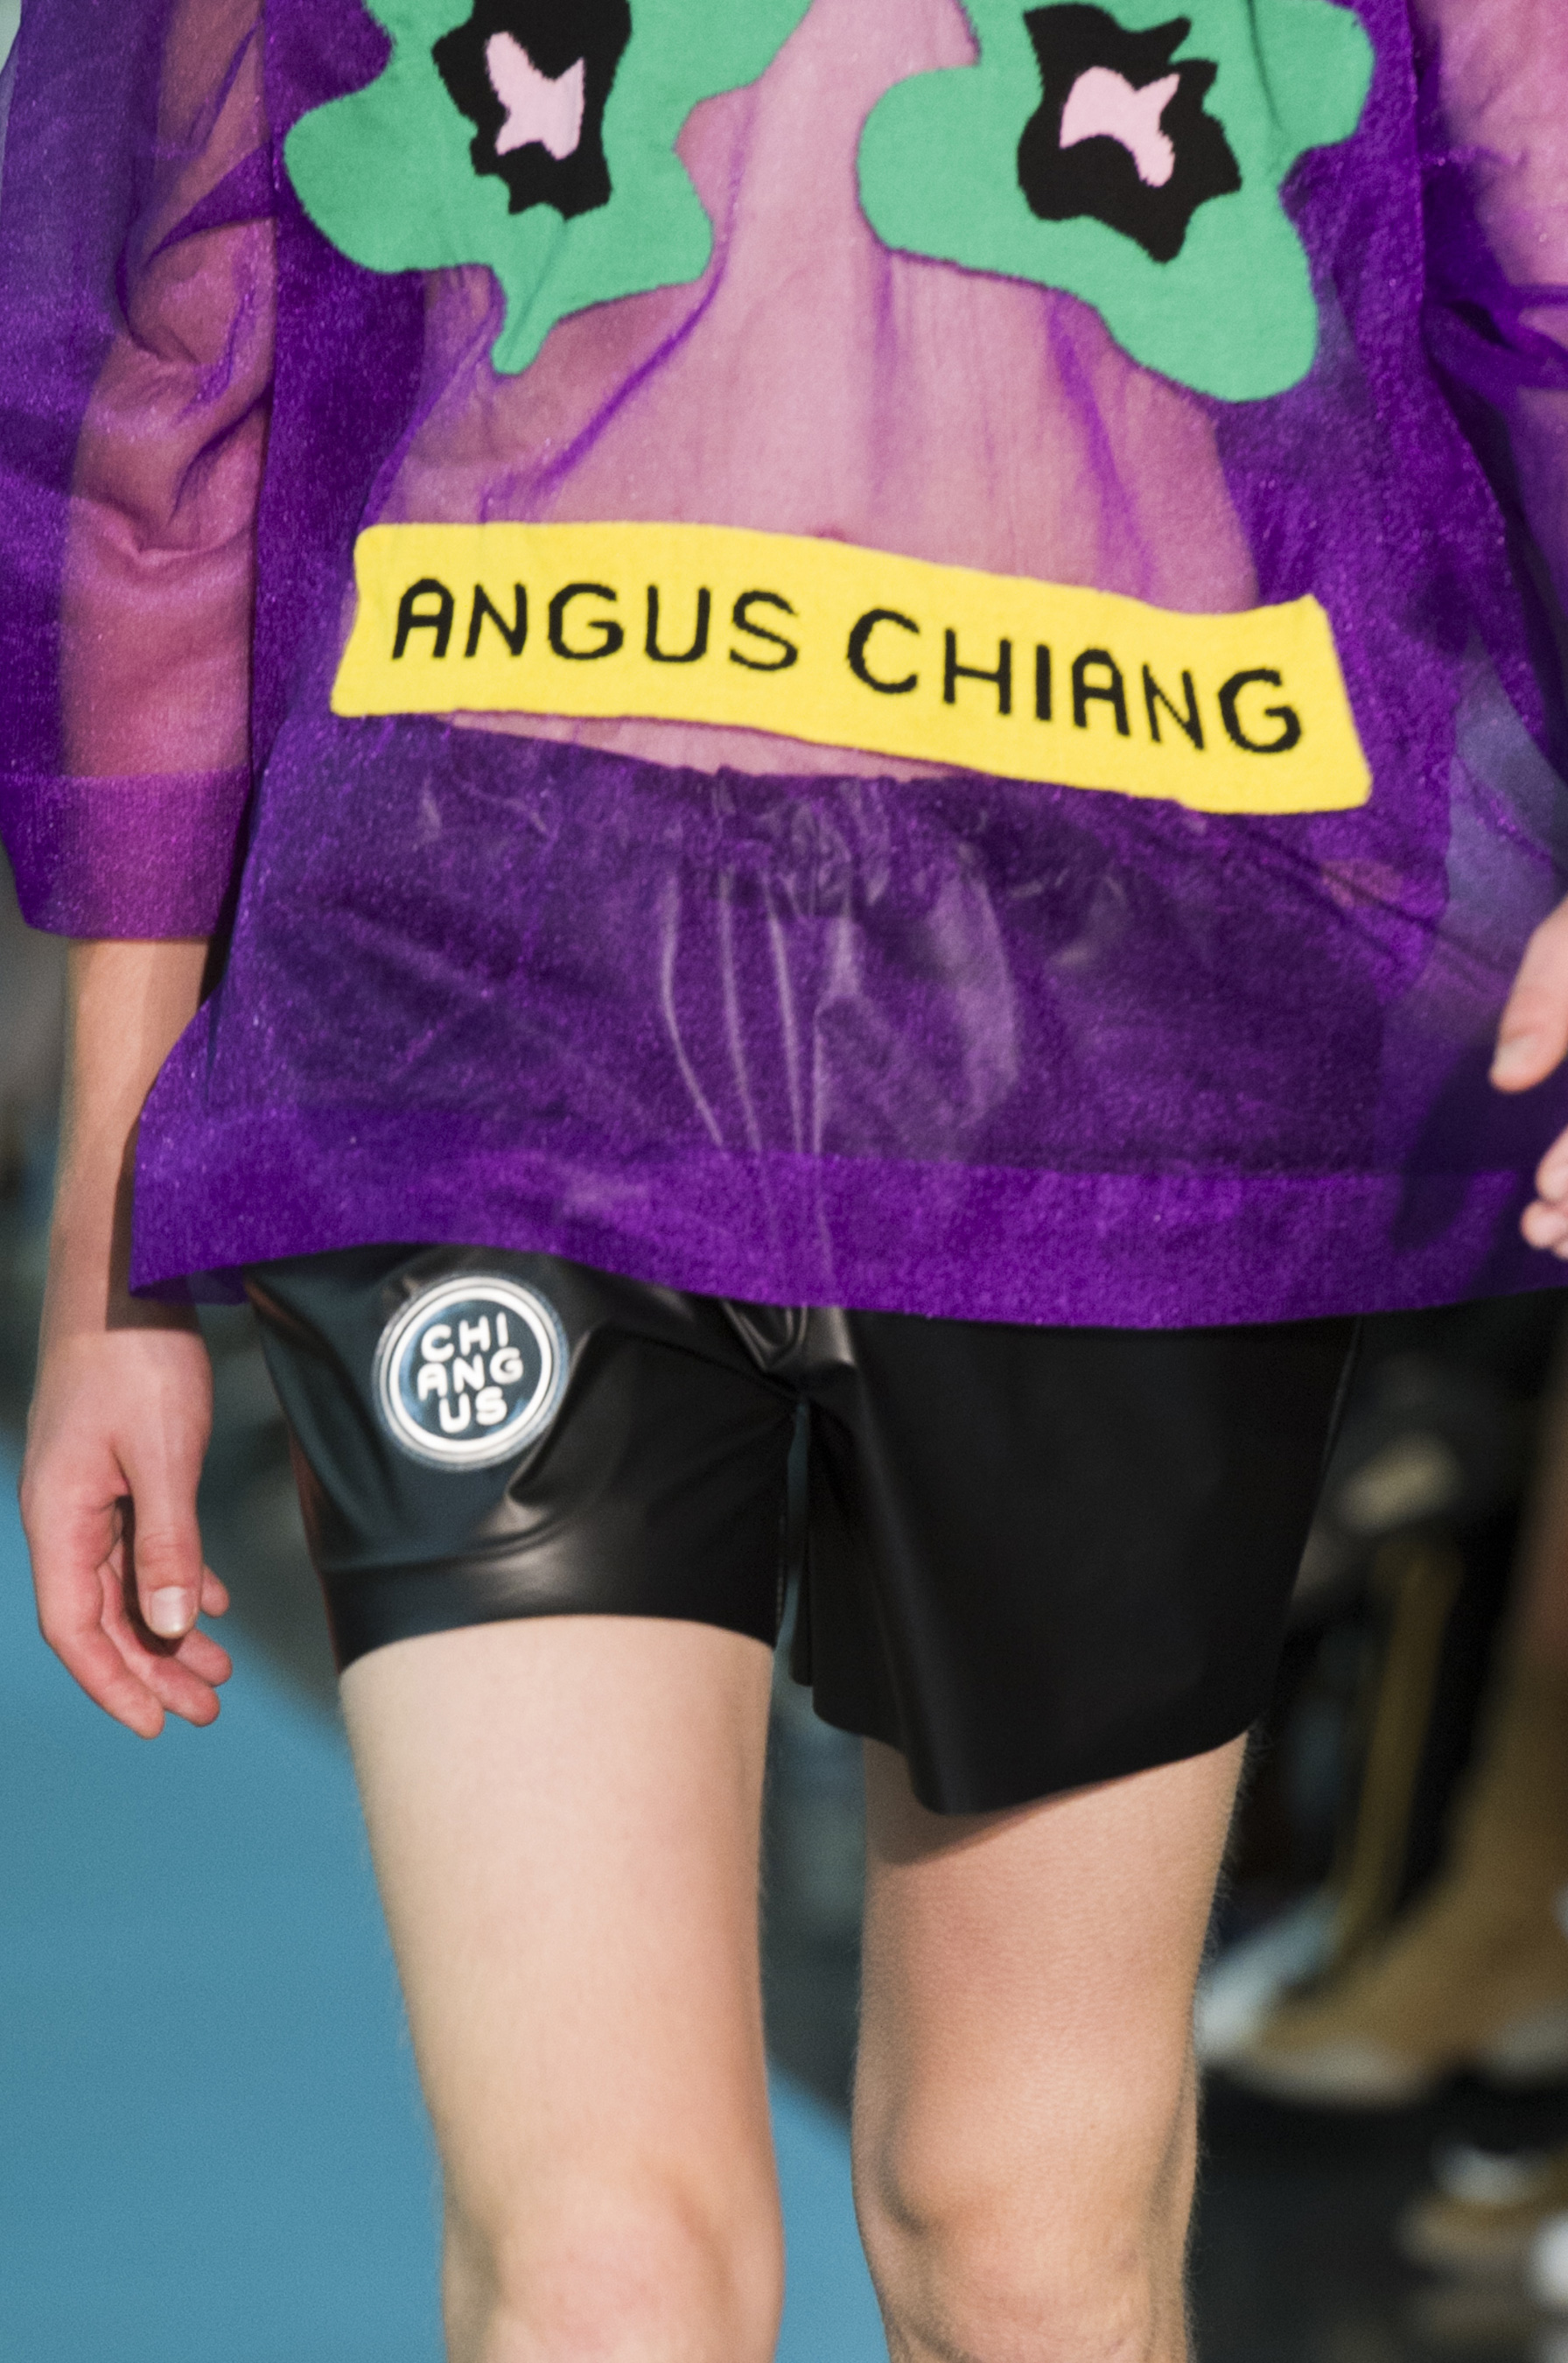 Angus Chiang m clp RS18 9655